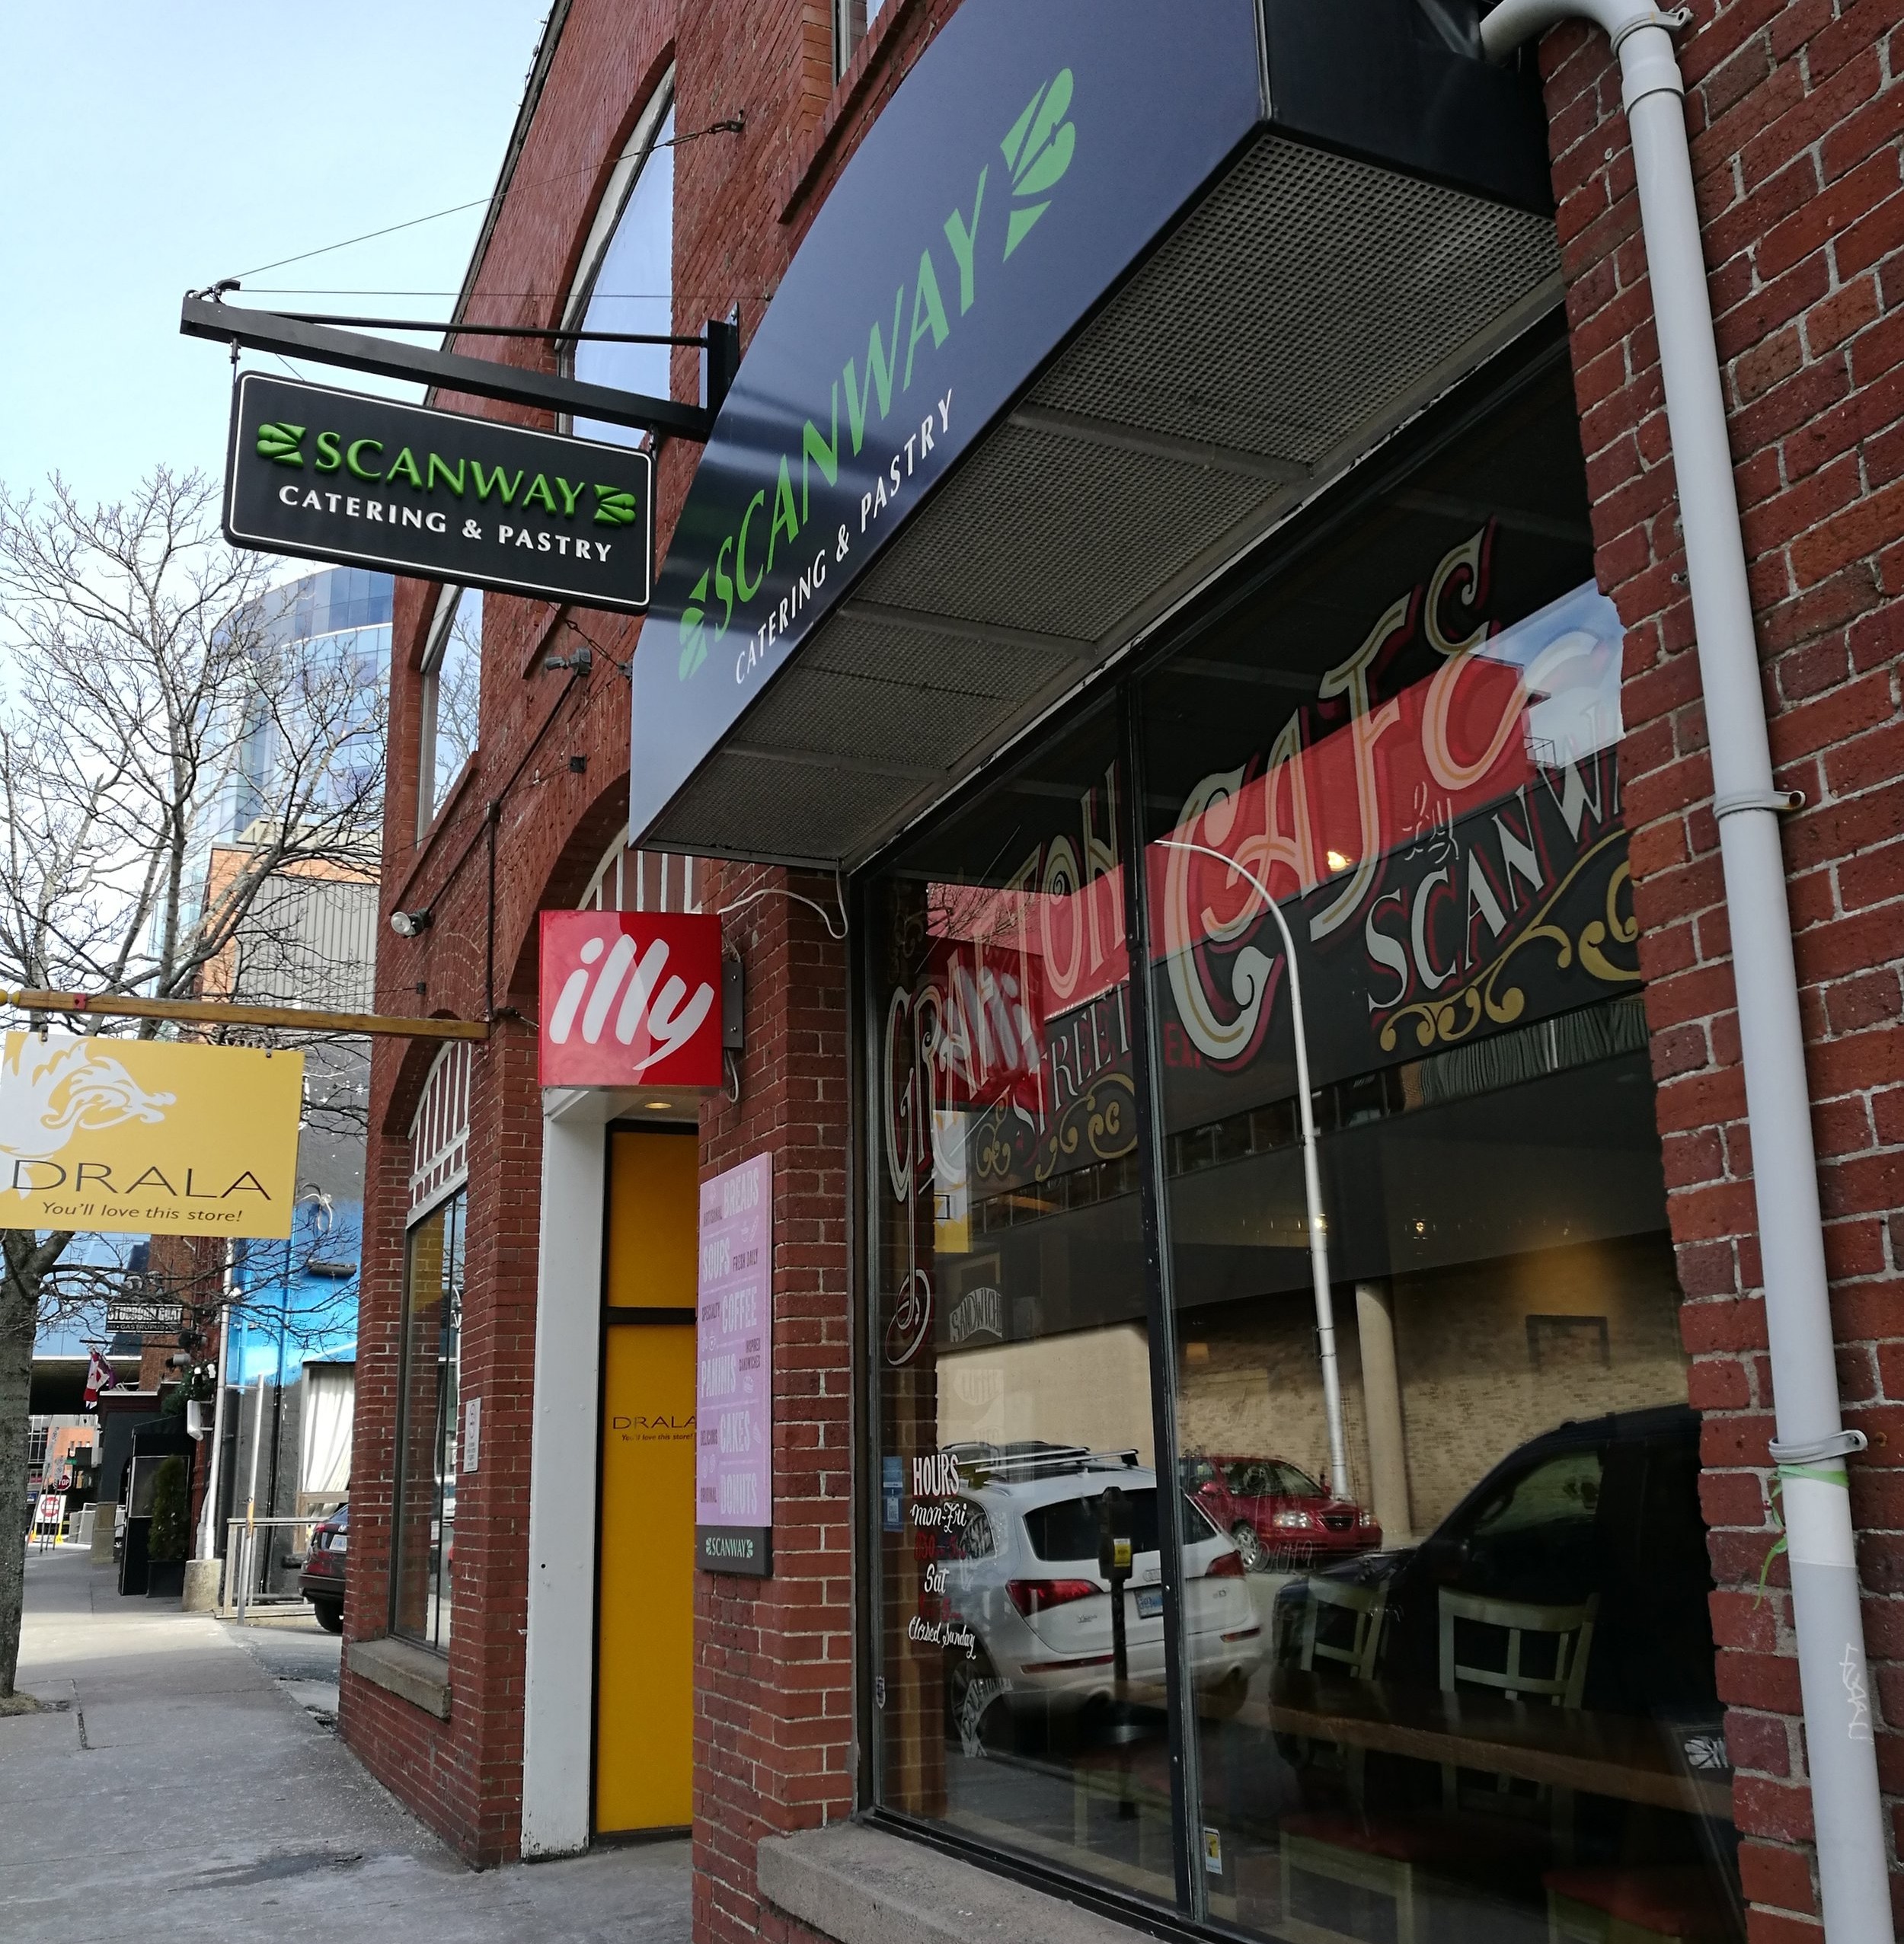 3. Grafton Cafe - by Scanway